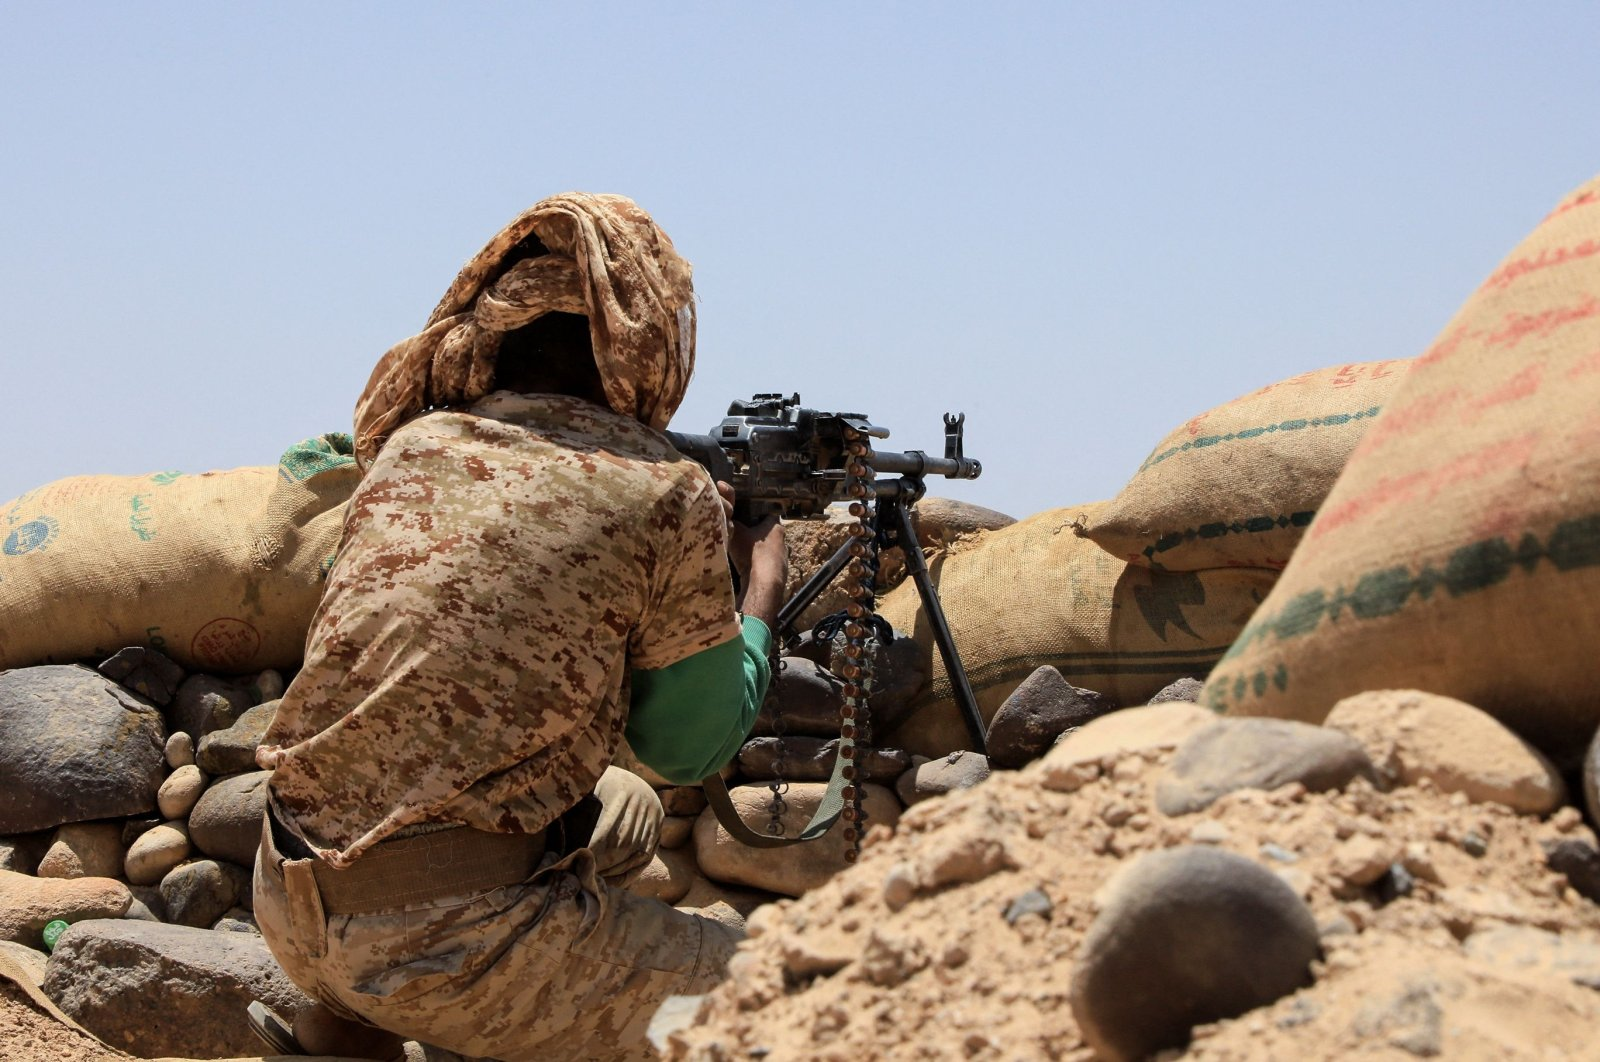 A fighter with forces loyal to Yemen's internationally-recognized government holds a position against Houthi rebels in Marib province, northwestern Yemen, April 6, 2021. (STR via AFP)